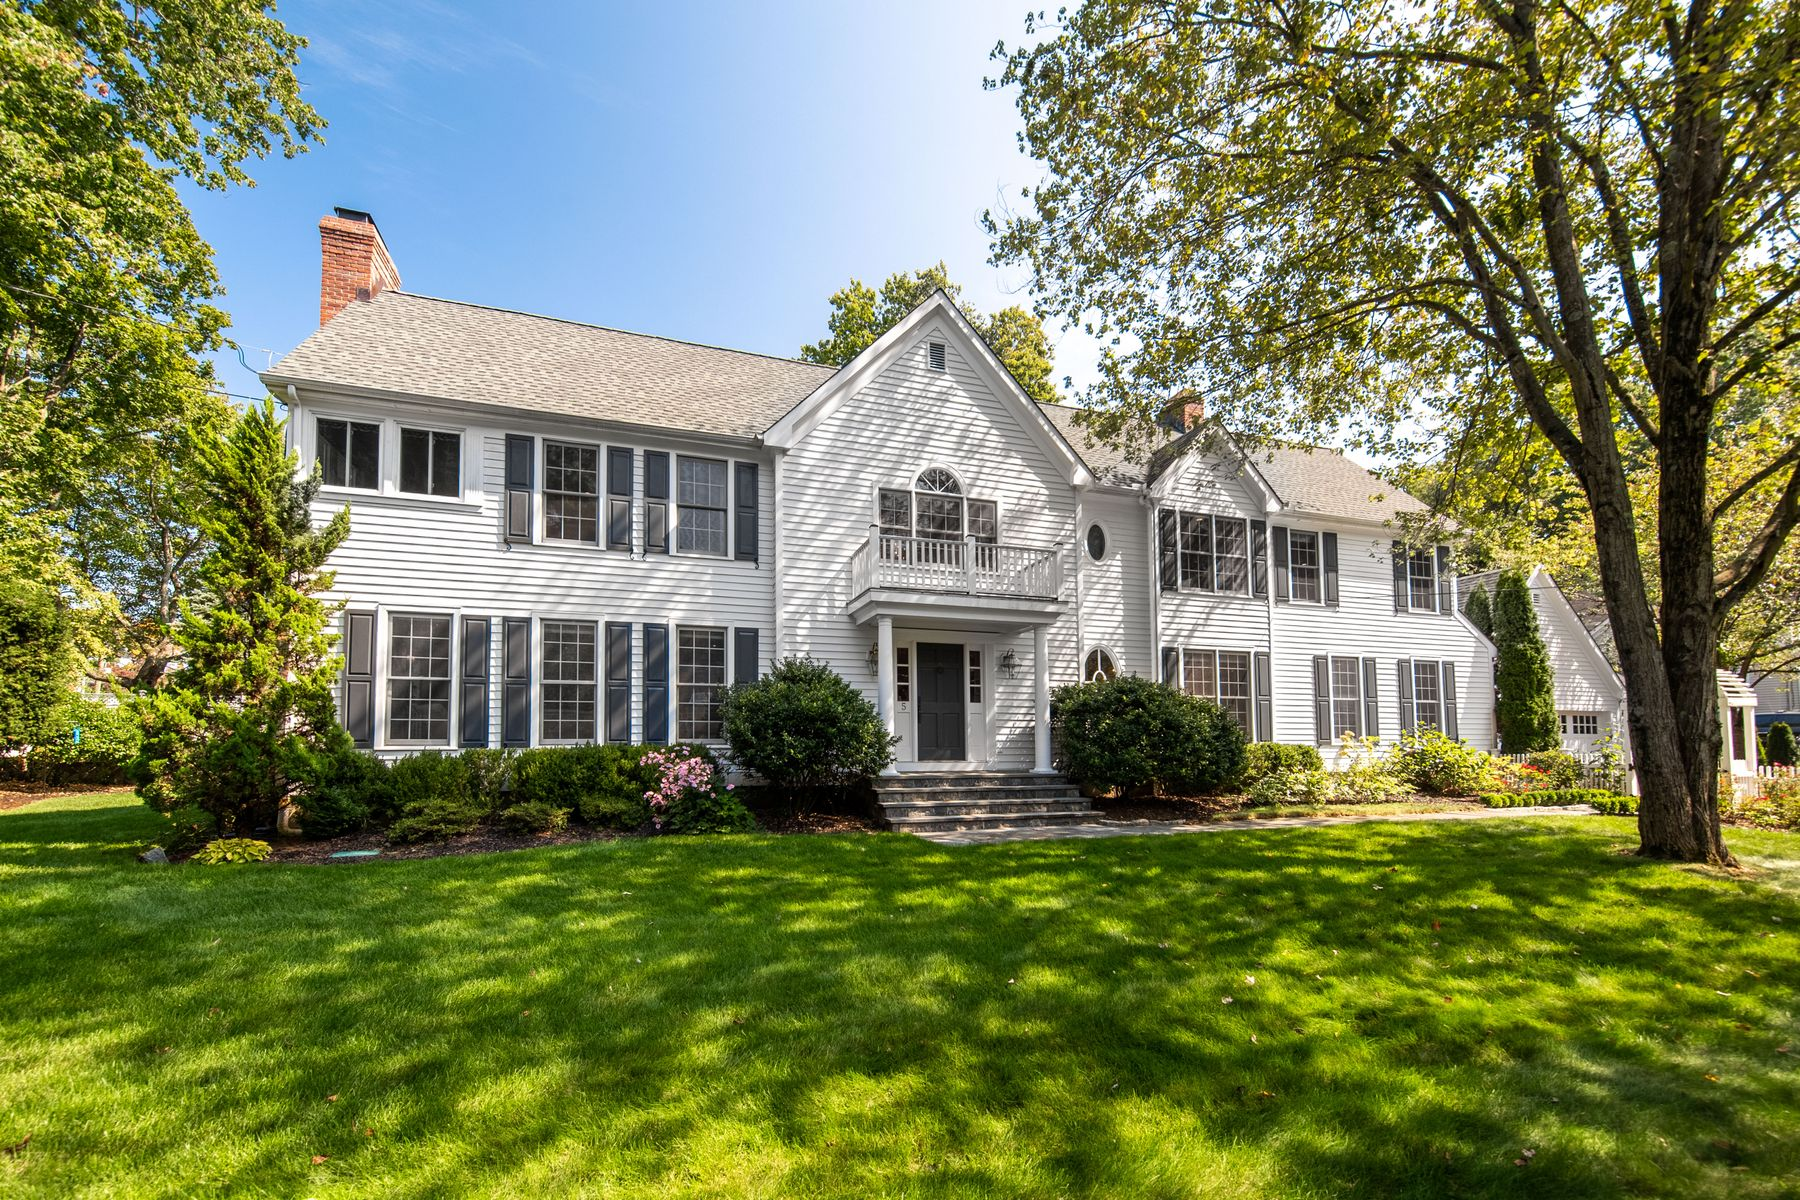 Single Family Homes for Sale at Classic Colonial in Riverside 5 Verona Drive Riverside, Connecticut 06878 United States